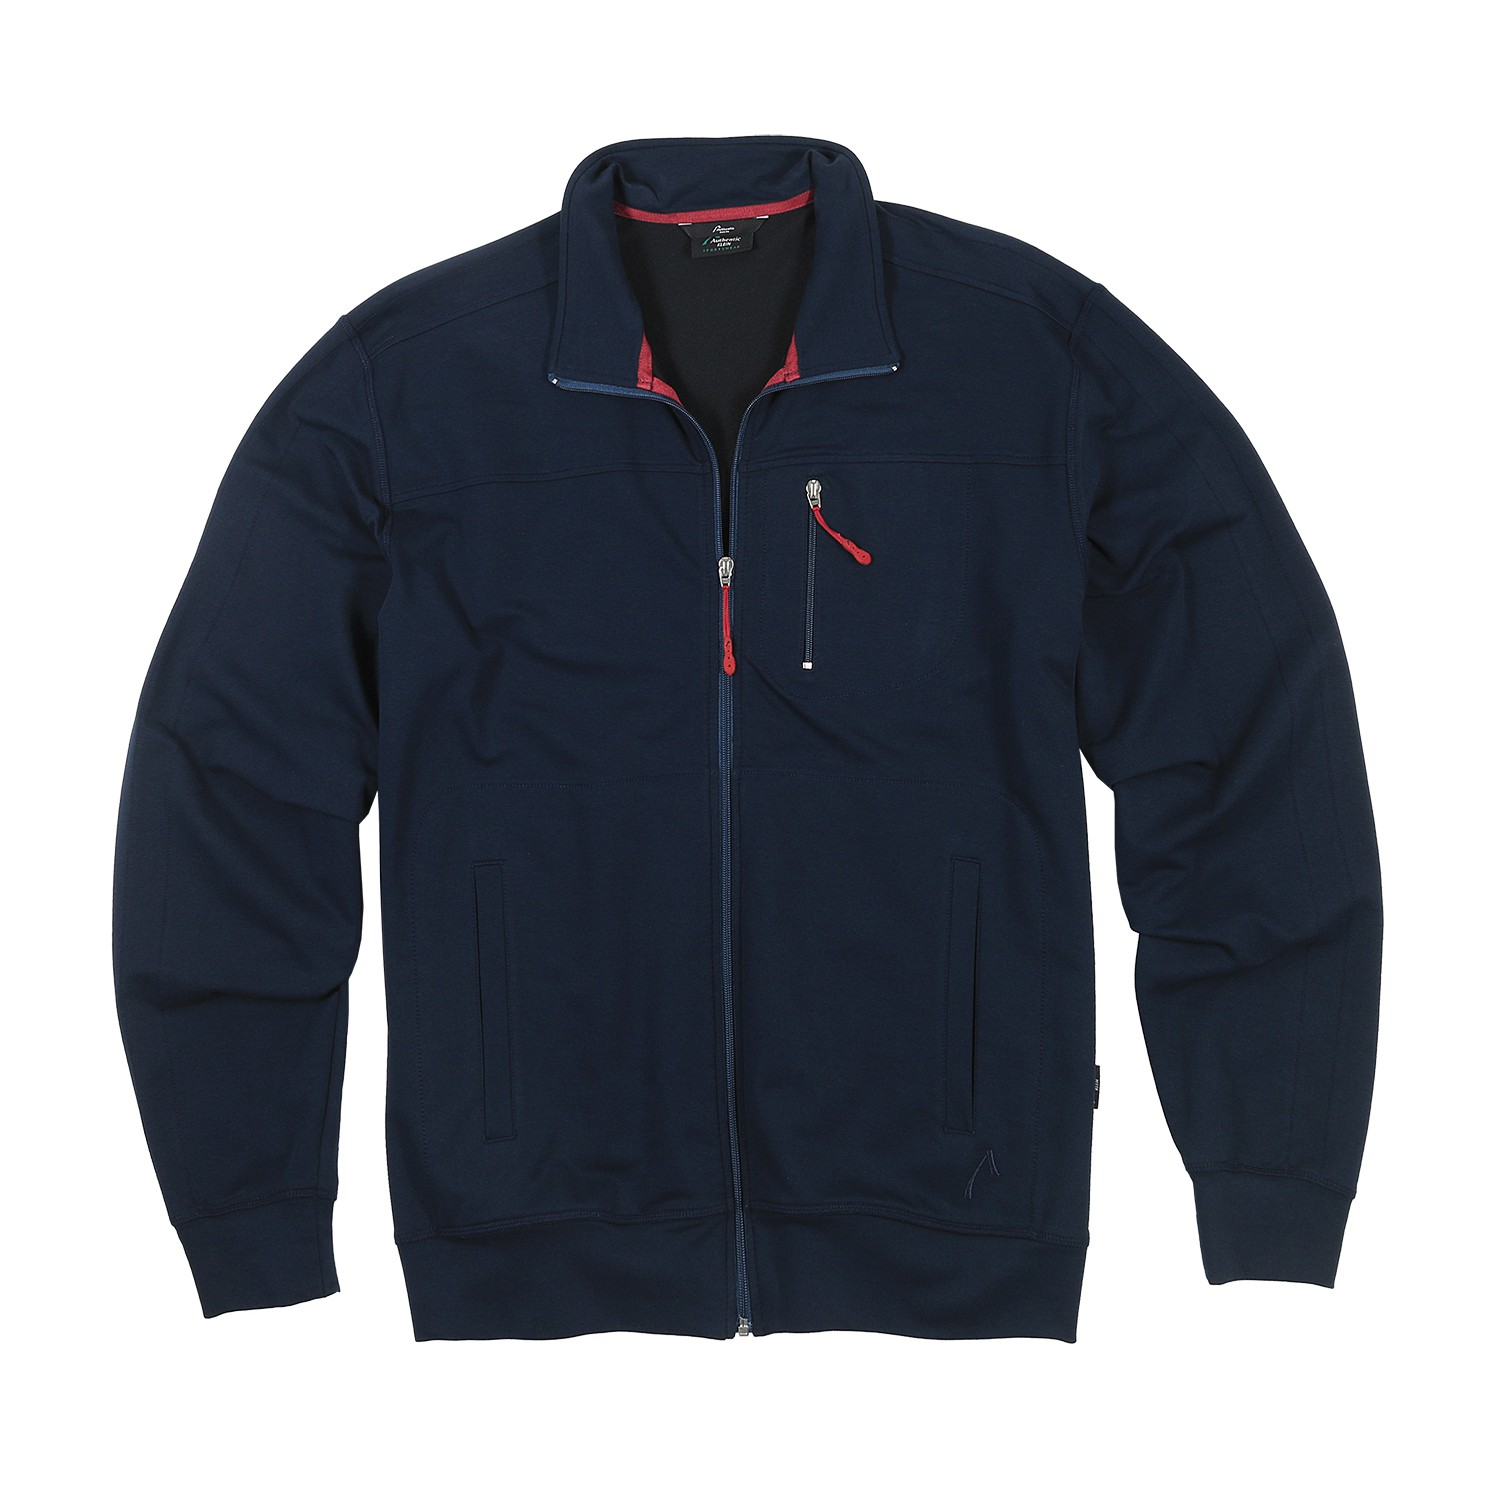 Detail Image to Stocky size sports and leisure jacket in blue, plus sizes by AUTHENTIC KLEIN